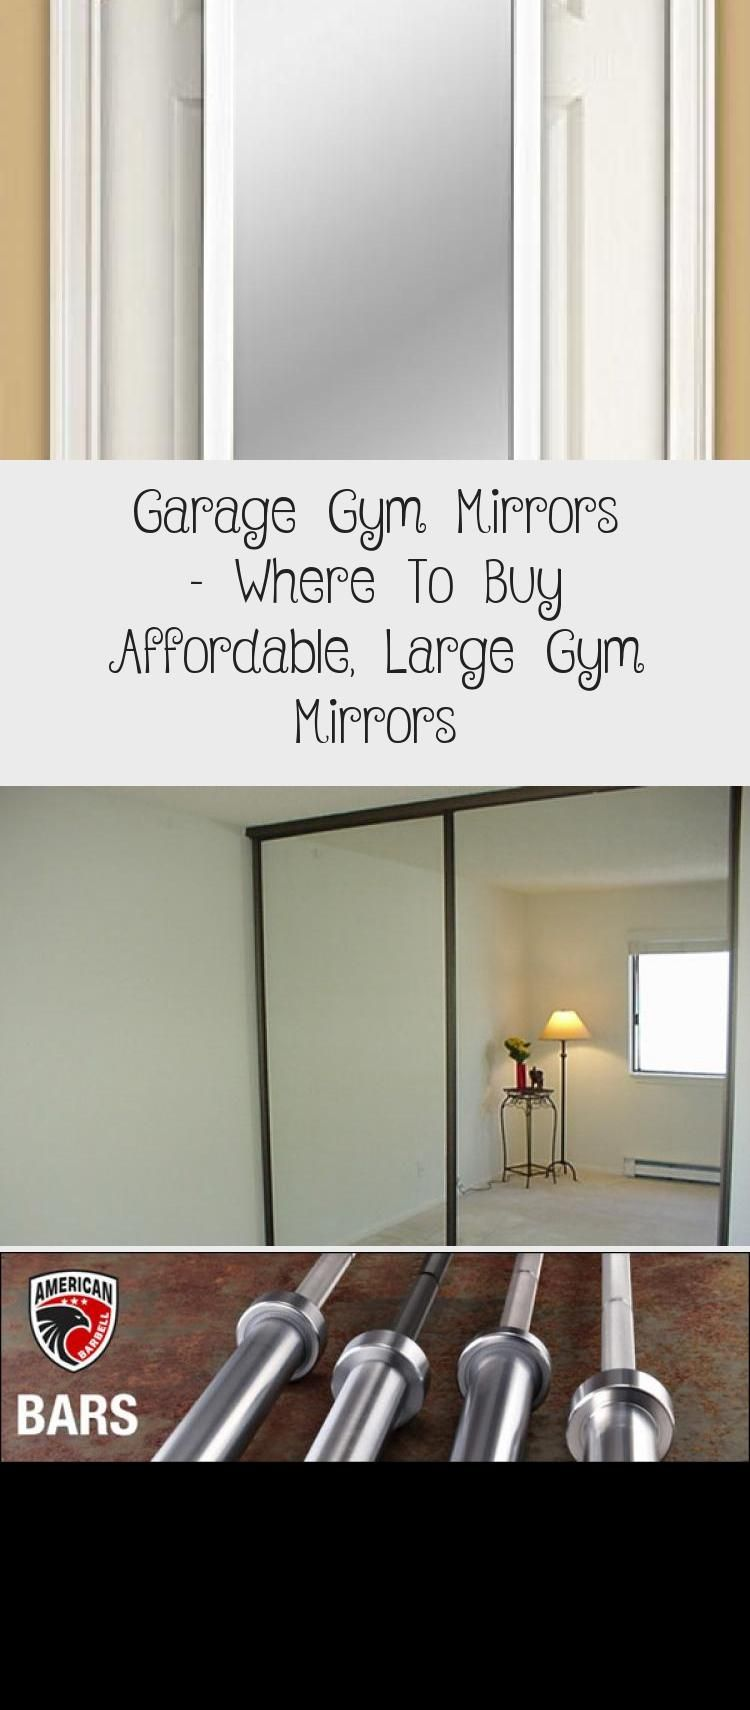 Fab Glass And Mirror Activity Mirrors For Gyms And Studios Compacthomegym Homegymboxing Homegymshed Homegymyoga Ho In 2020 Gym Mirrors Home Gym Mirrors Garage Gym